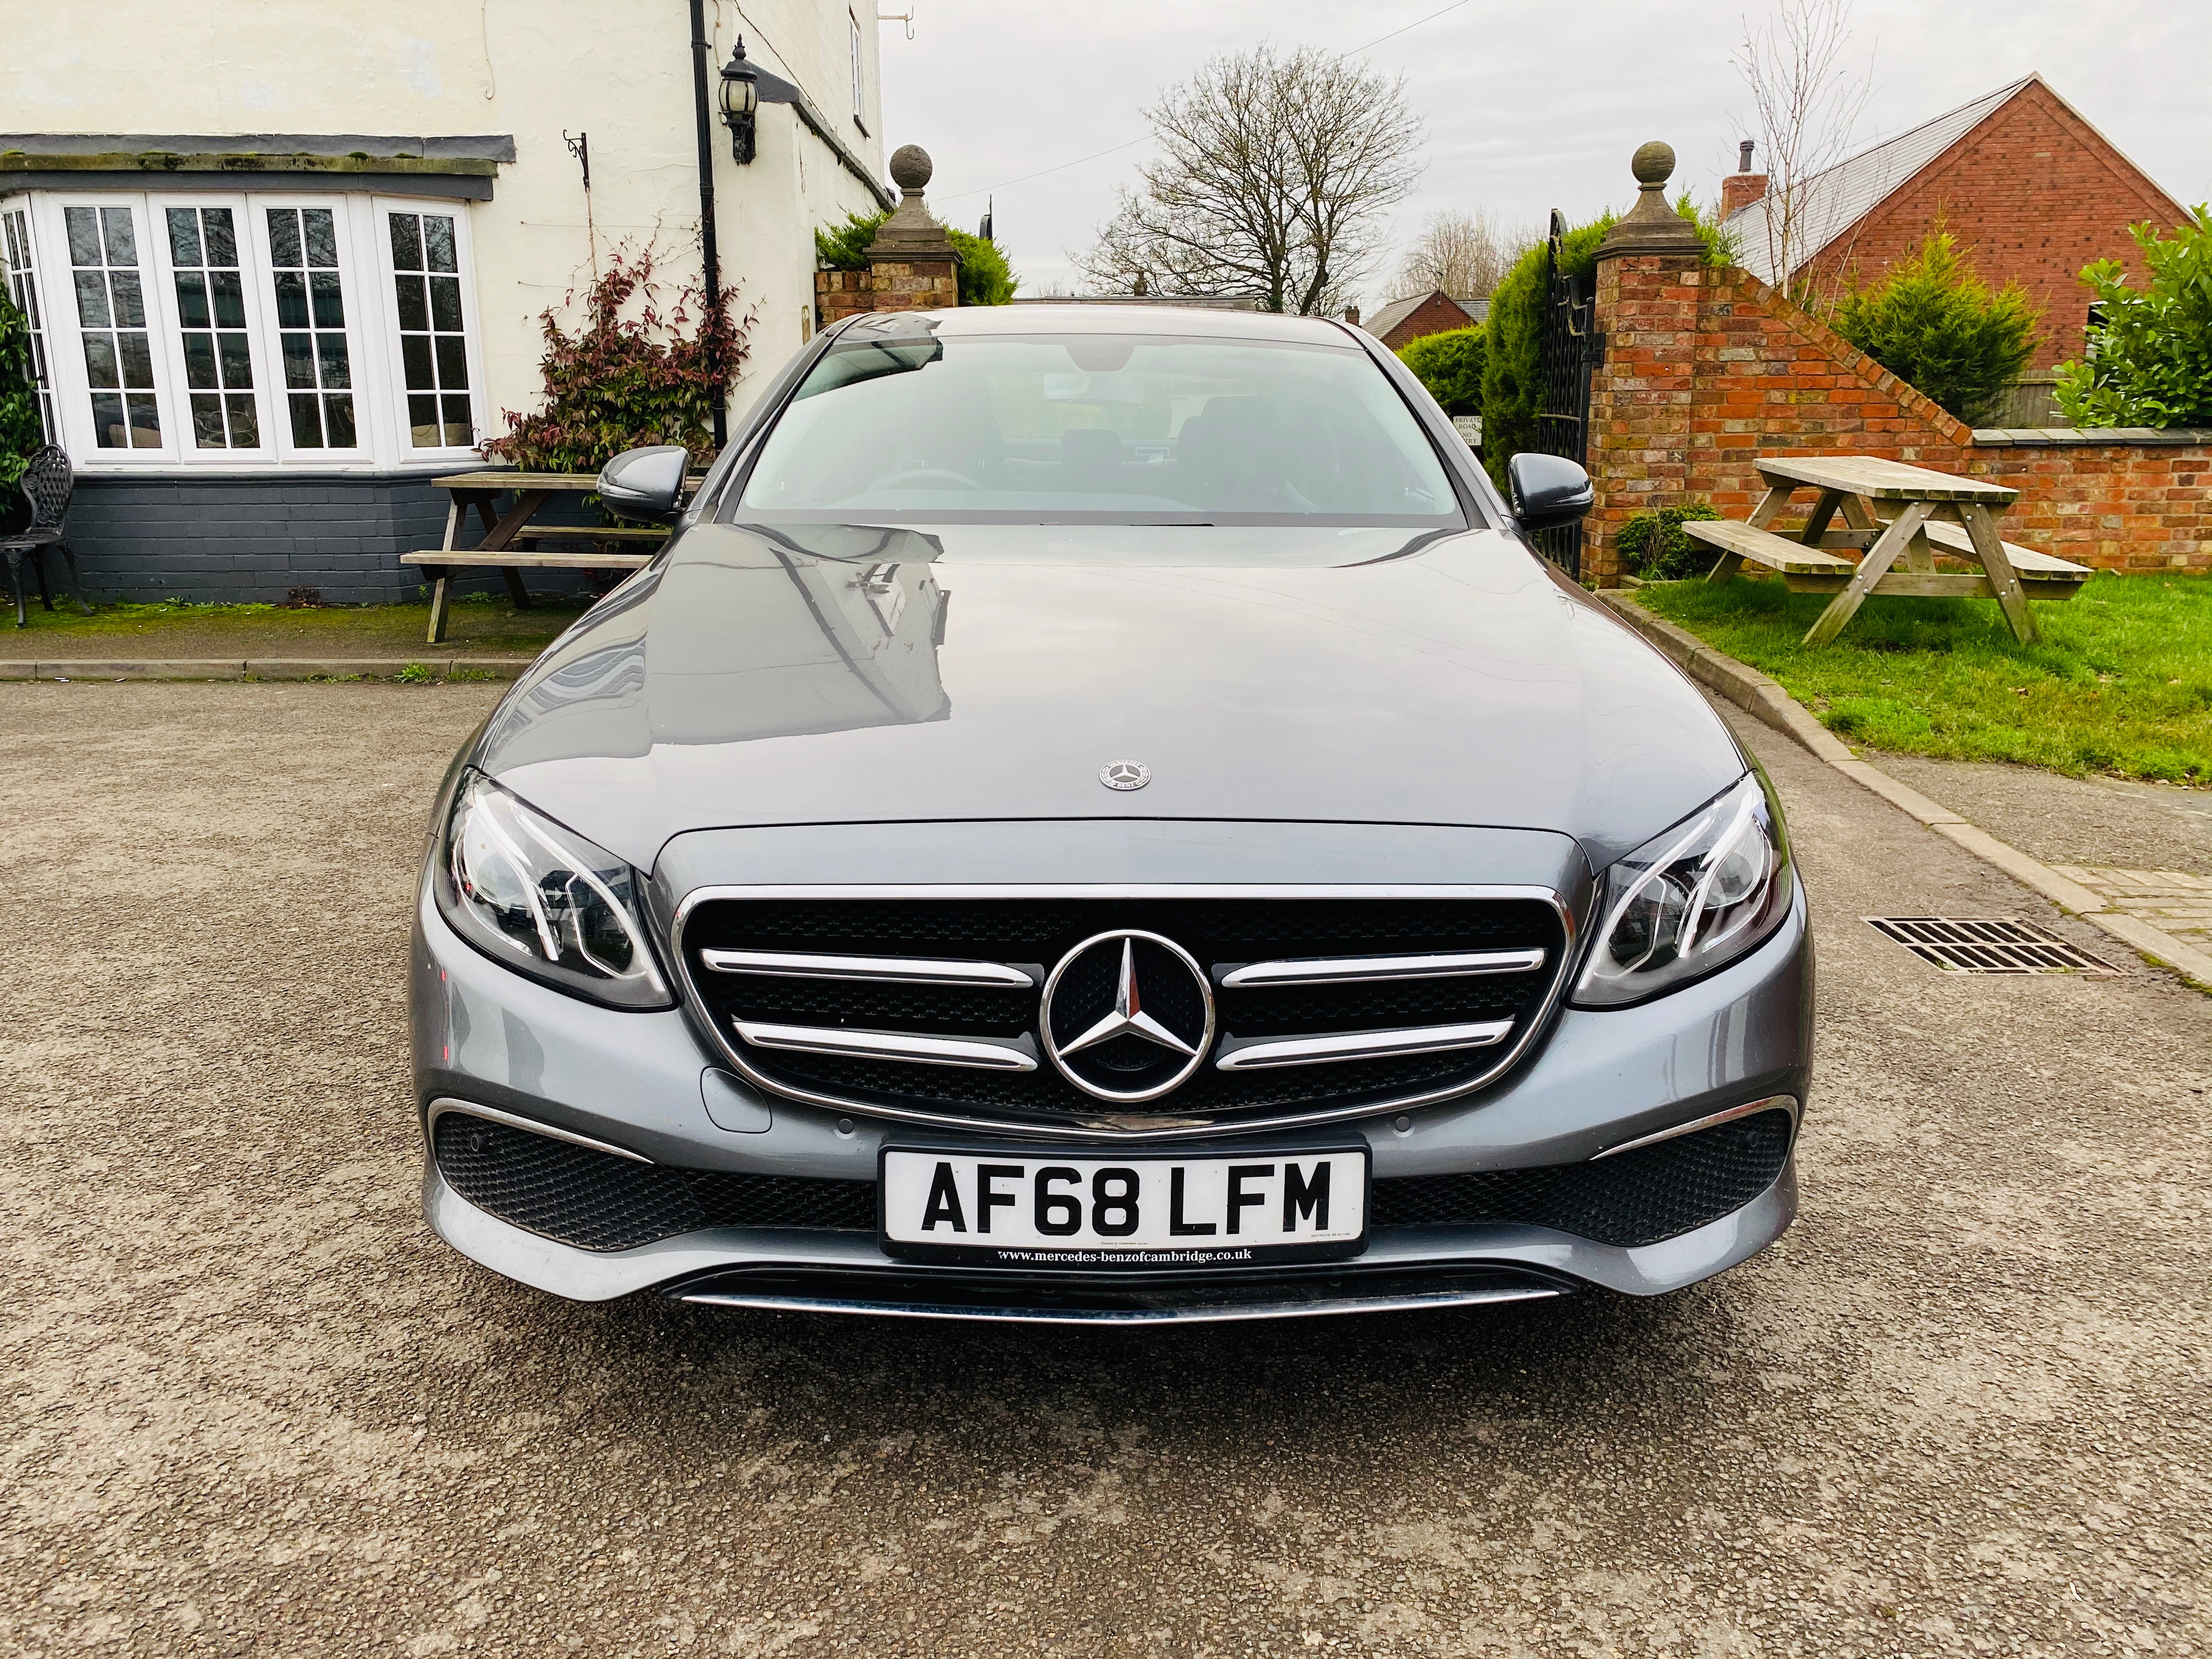 """ON SALE MERCEDES E220d """"SPECIAL EQUIPMENT"""" 9G-TRONIC (2019 MODEL) *GREAT SPEC*SAT NAV - LEATHER - Image 3 of 26"""